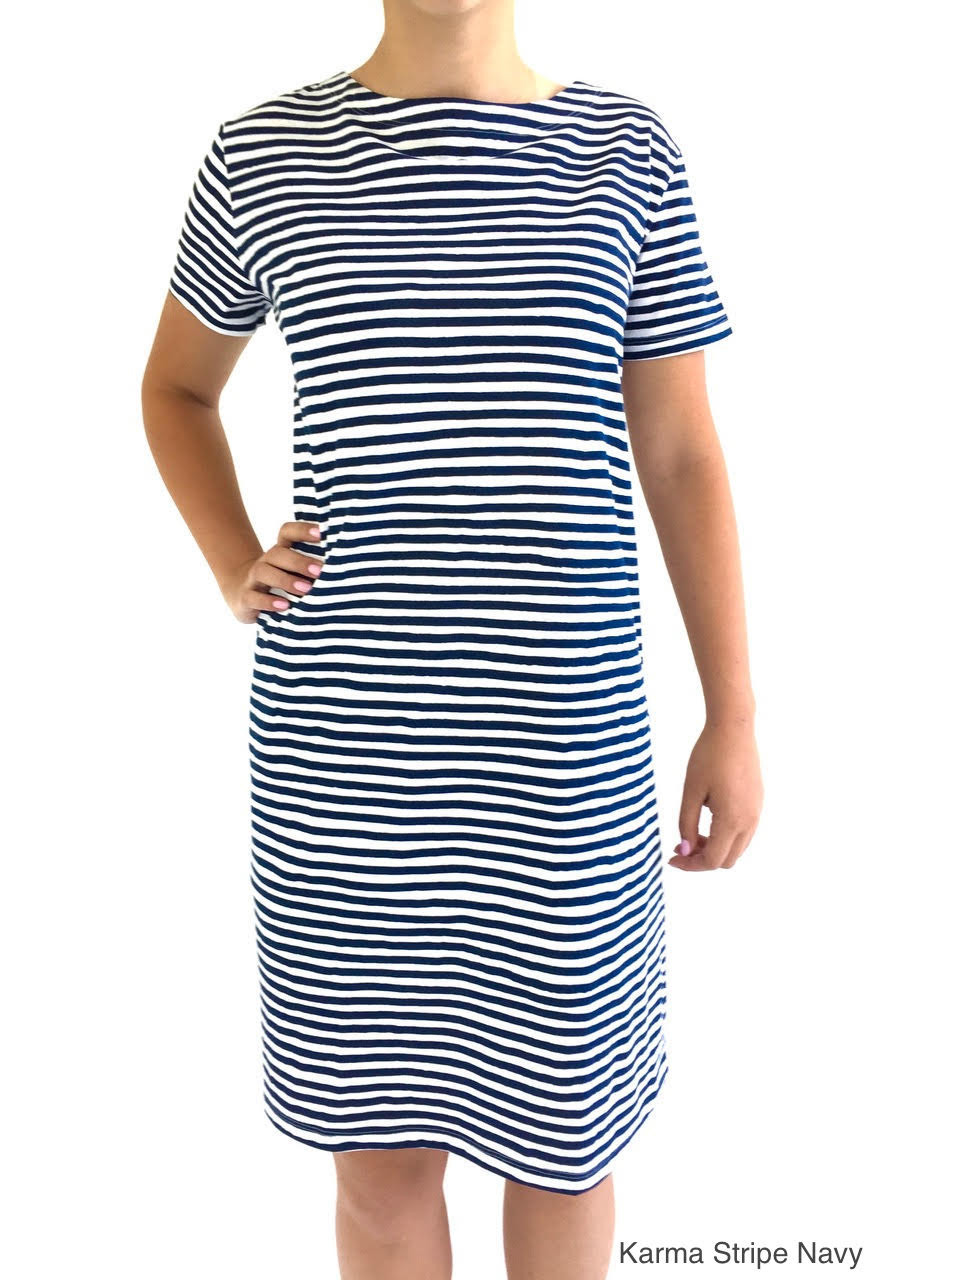 See Design Knit Dress Karma Stripe Navy cotton coverup by Donna Gorman